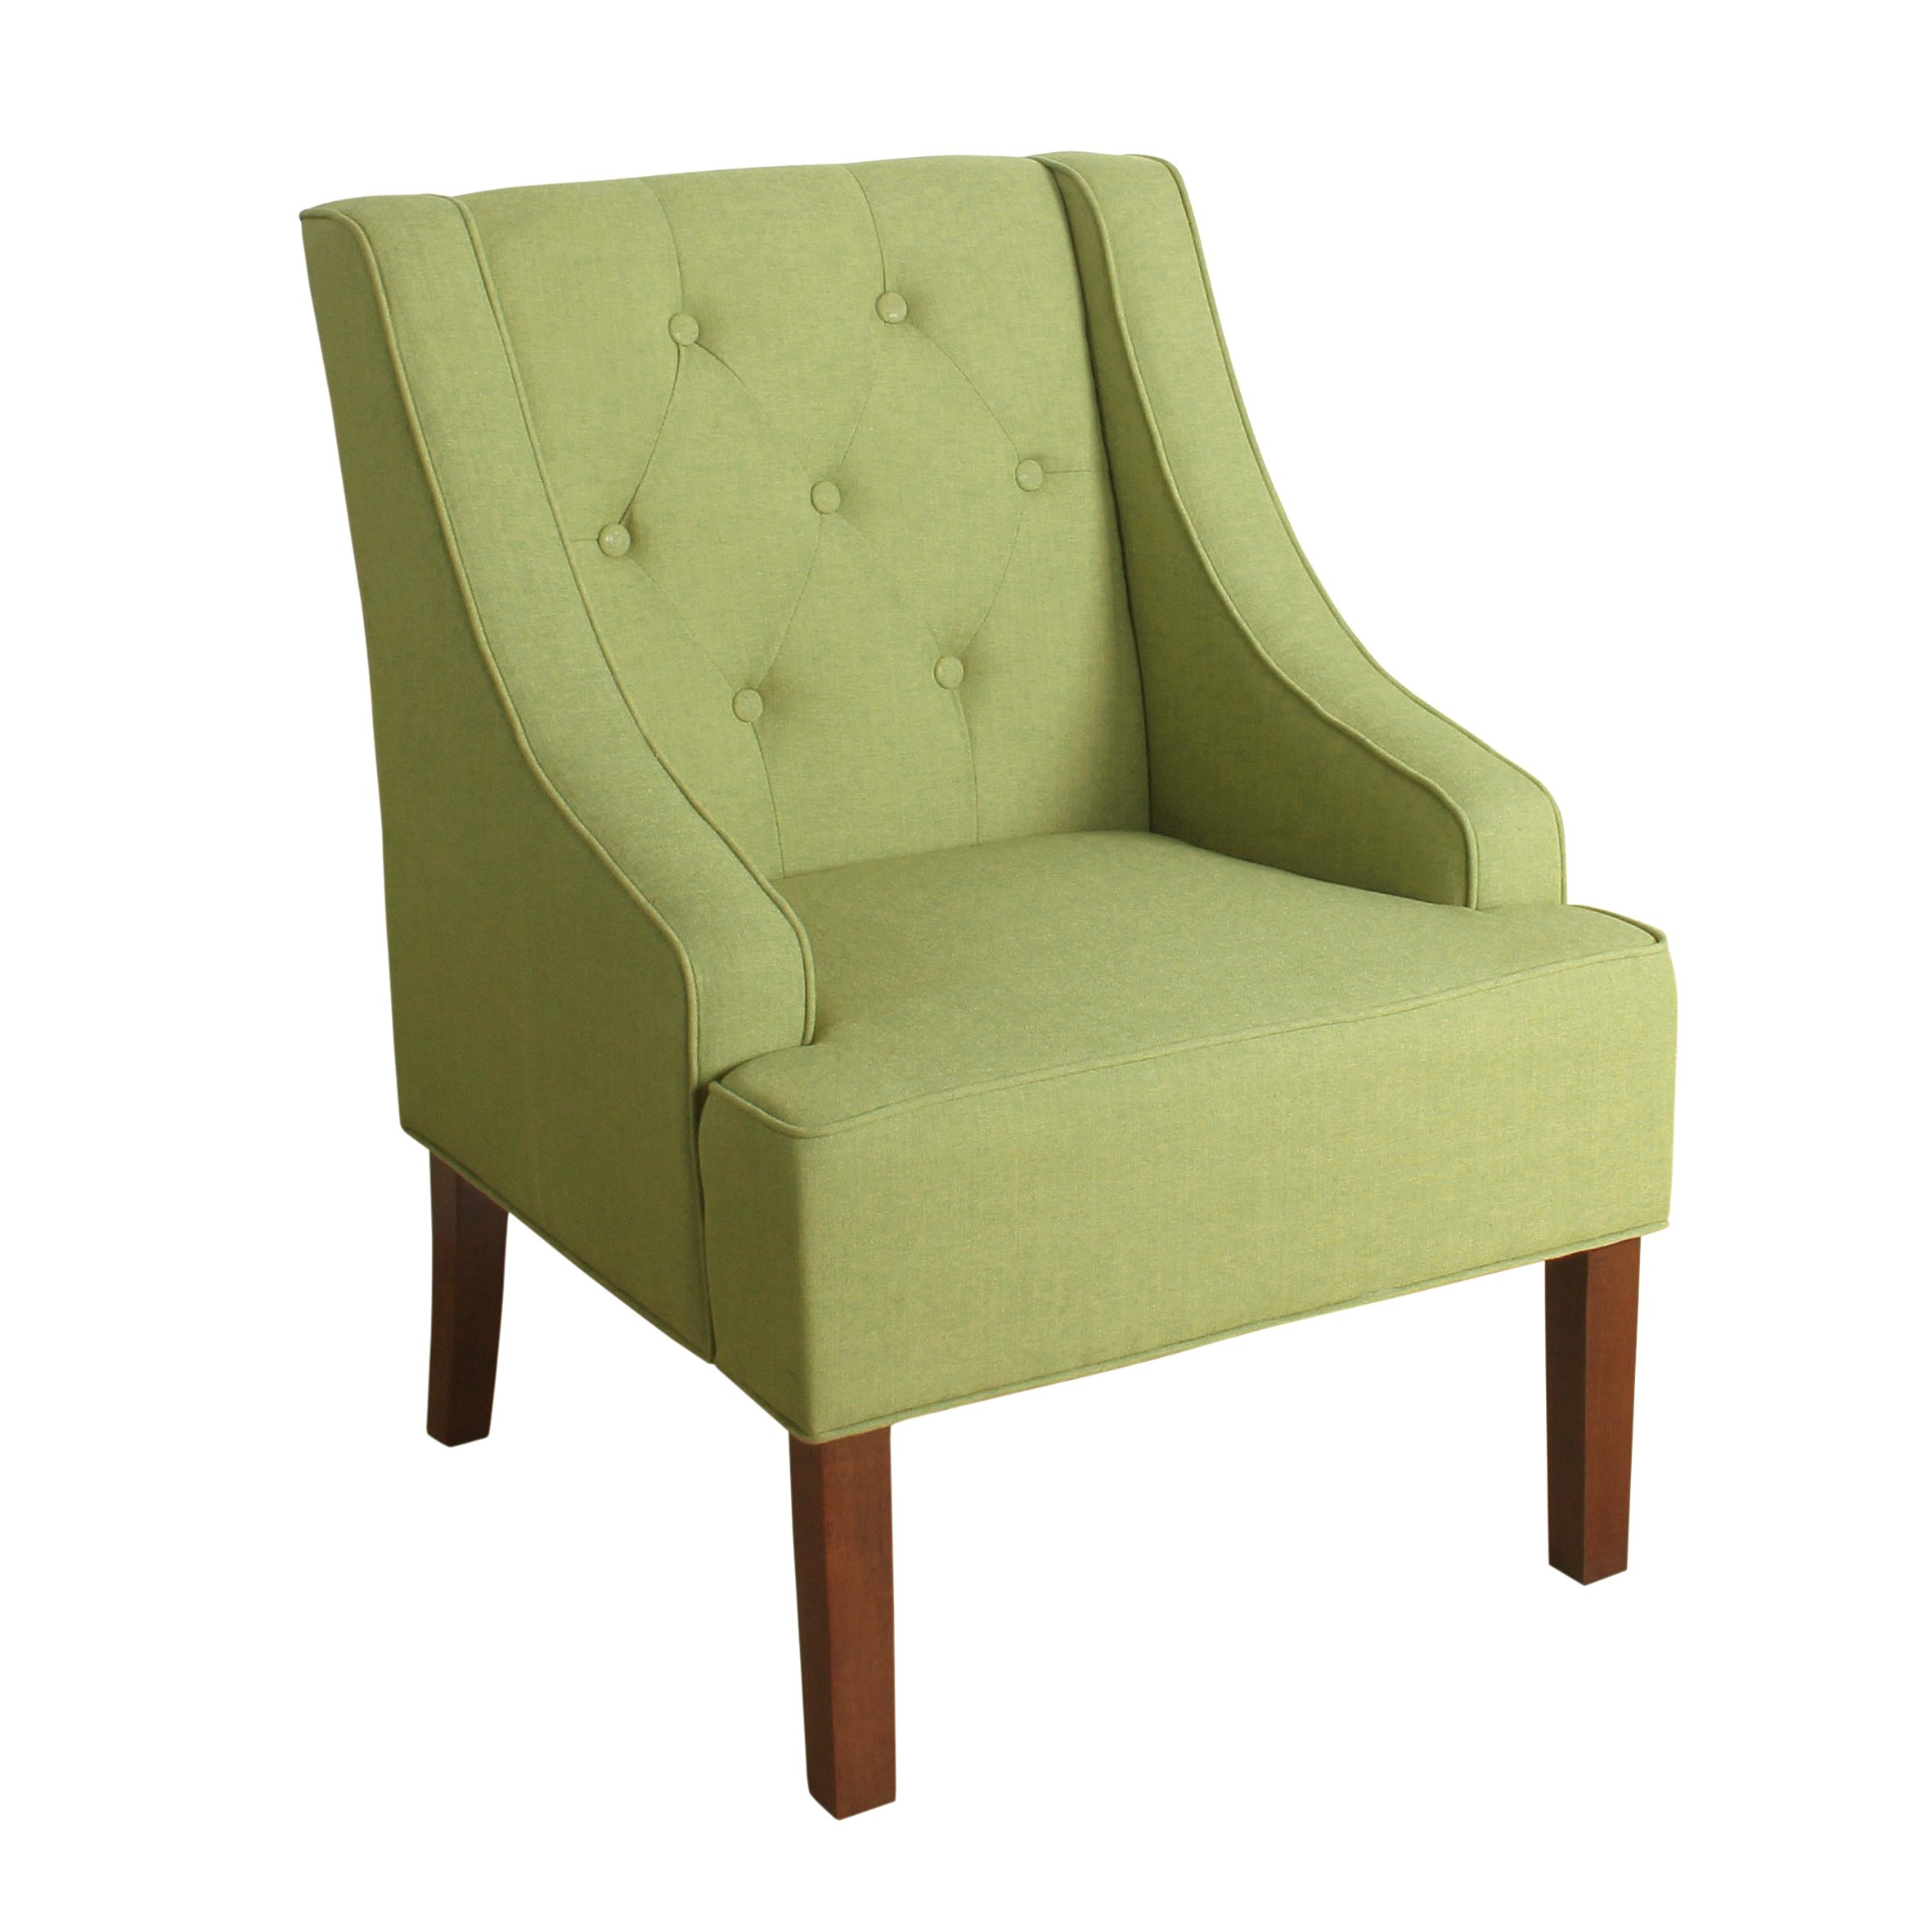 HomePop Kate Tufted Swoop Arm Accent Chair, Olive Green